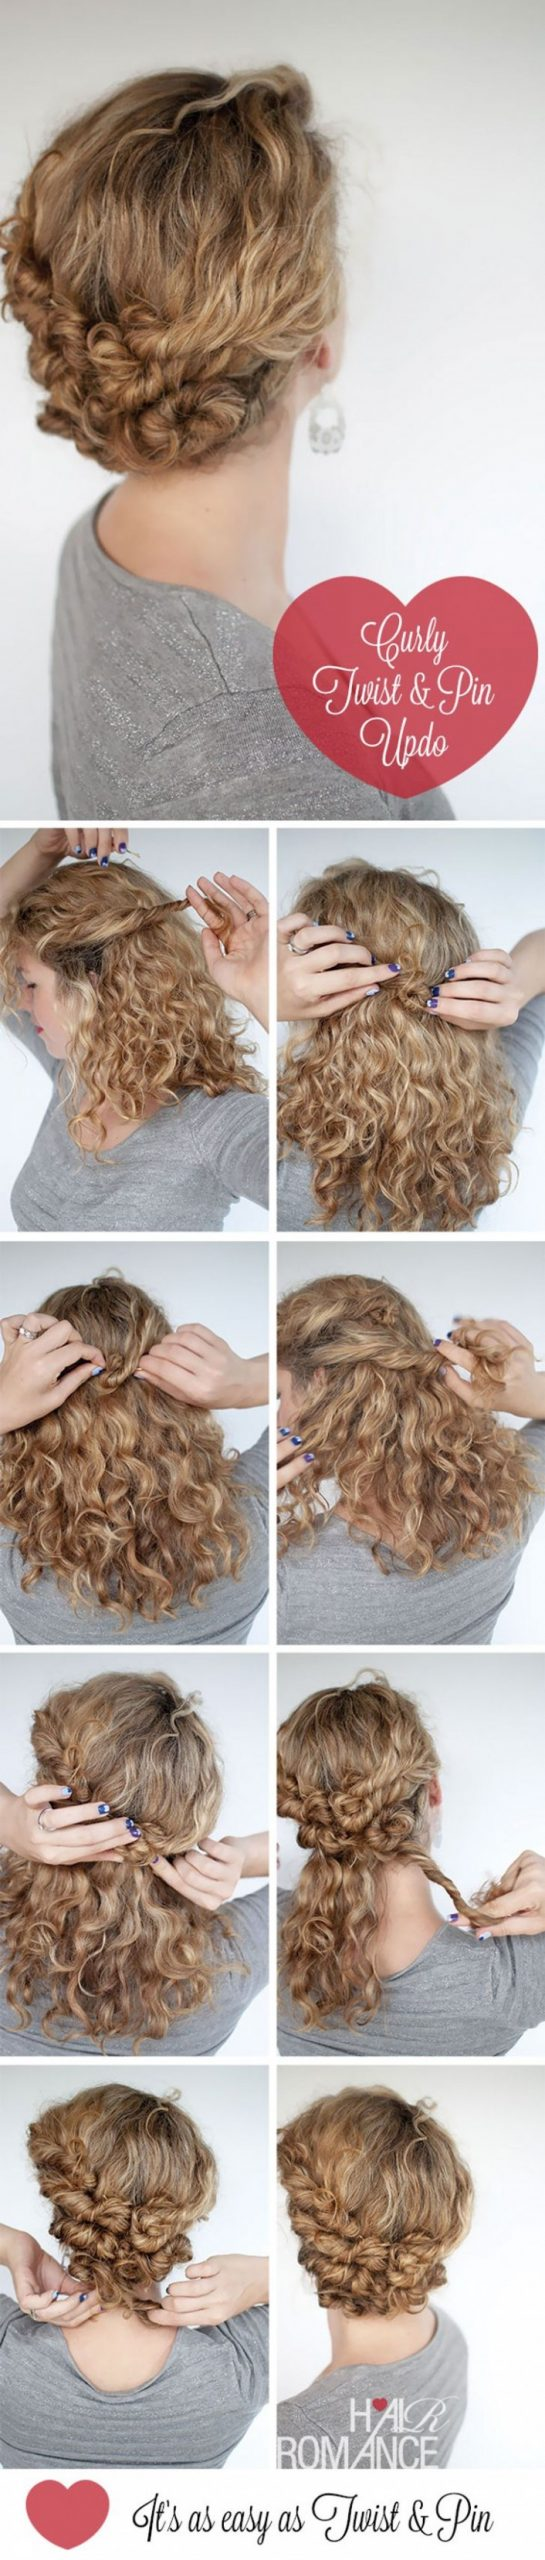 10 Fantastic Hairstyle Tutorials For Short And Naturally Curly Hair Hairstyles To Do With Short Curly Hair